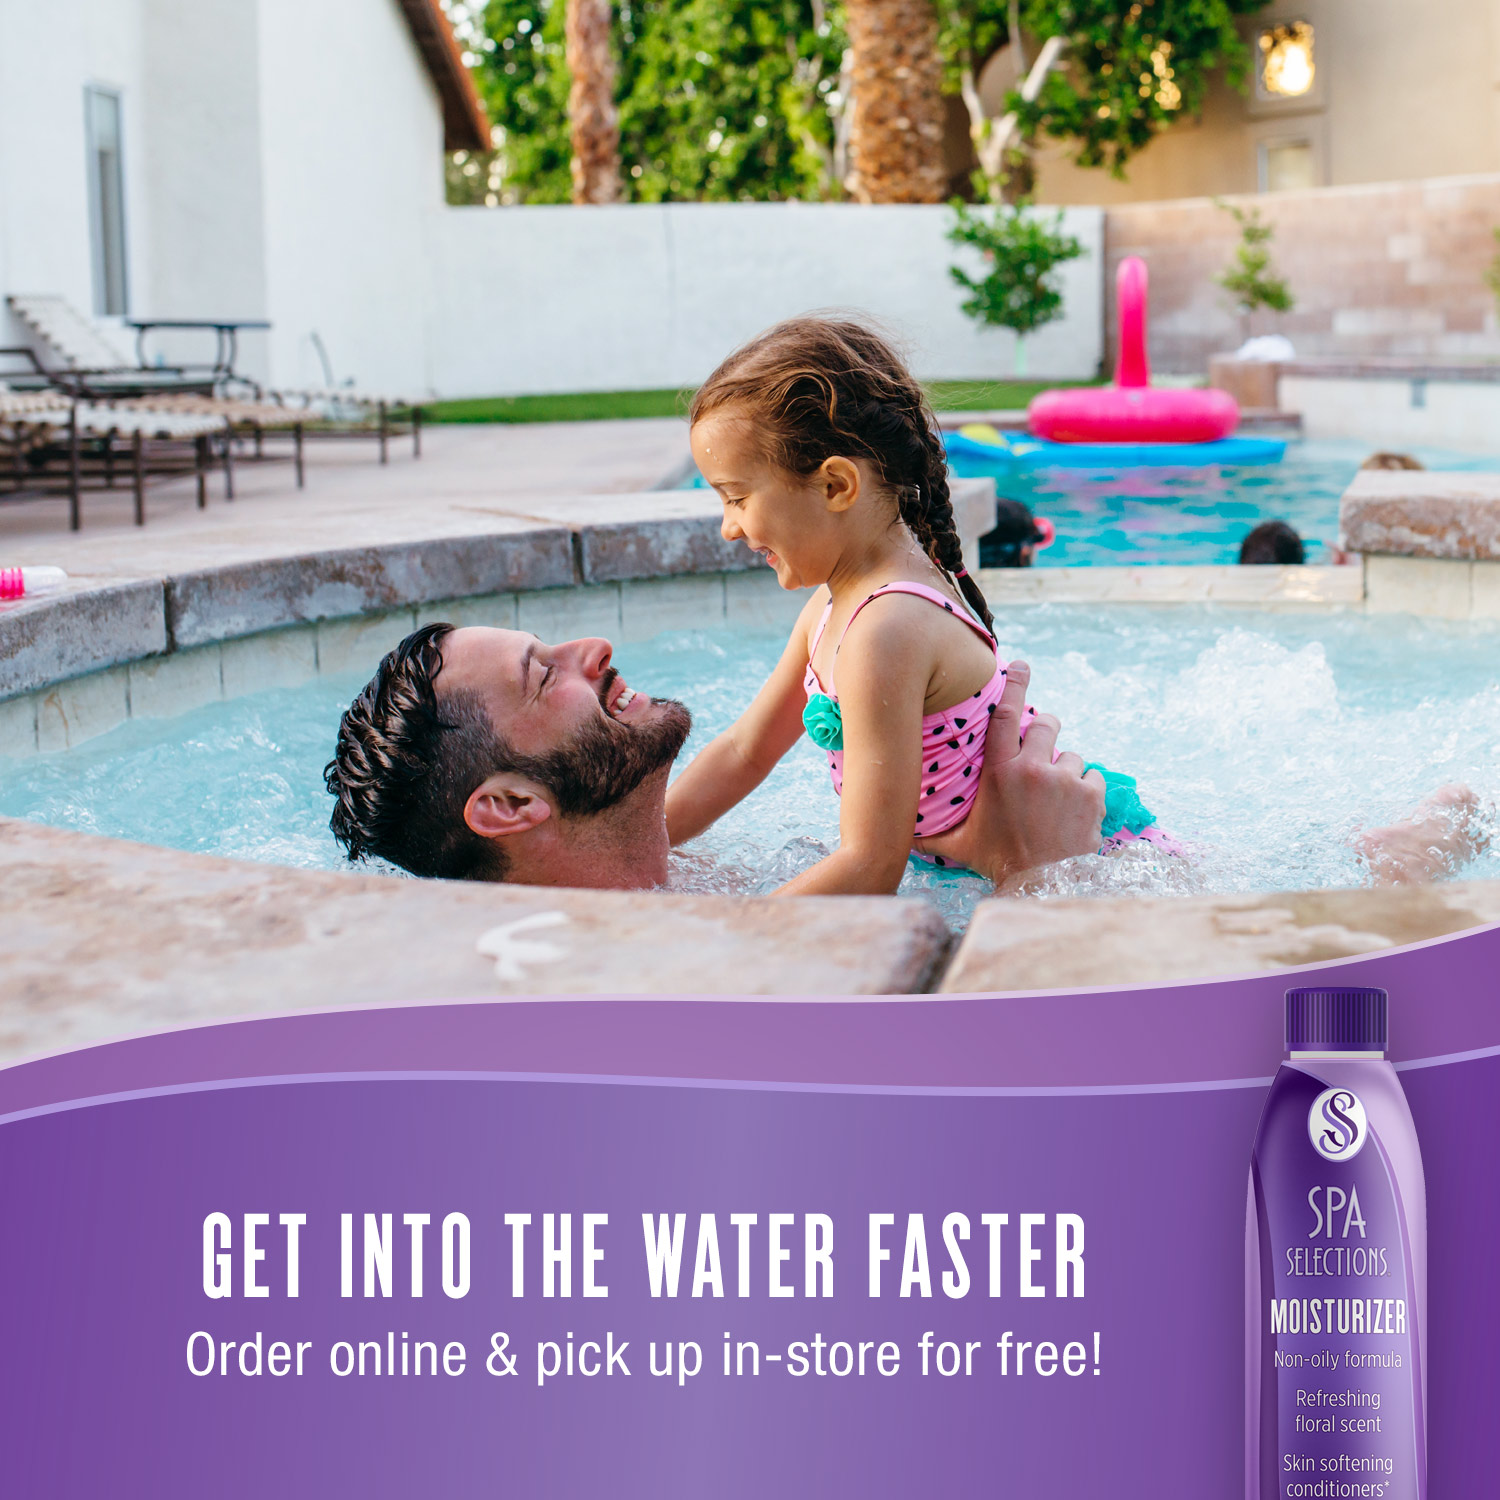 Father and daughter enjoying outdoor hot tub. Get into the water faster with Spa Selections Moisturizer, order online and pick up in-store for free!